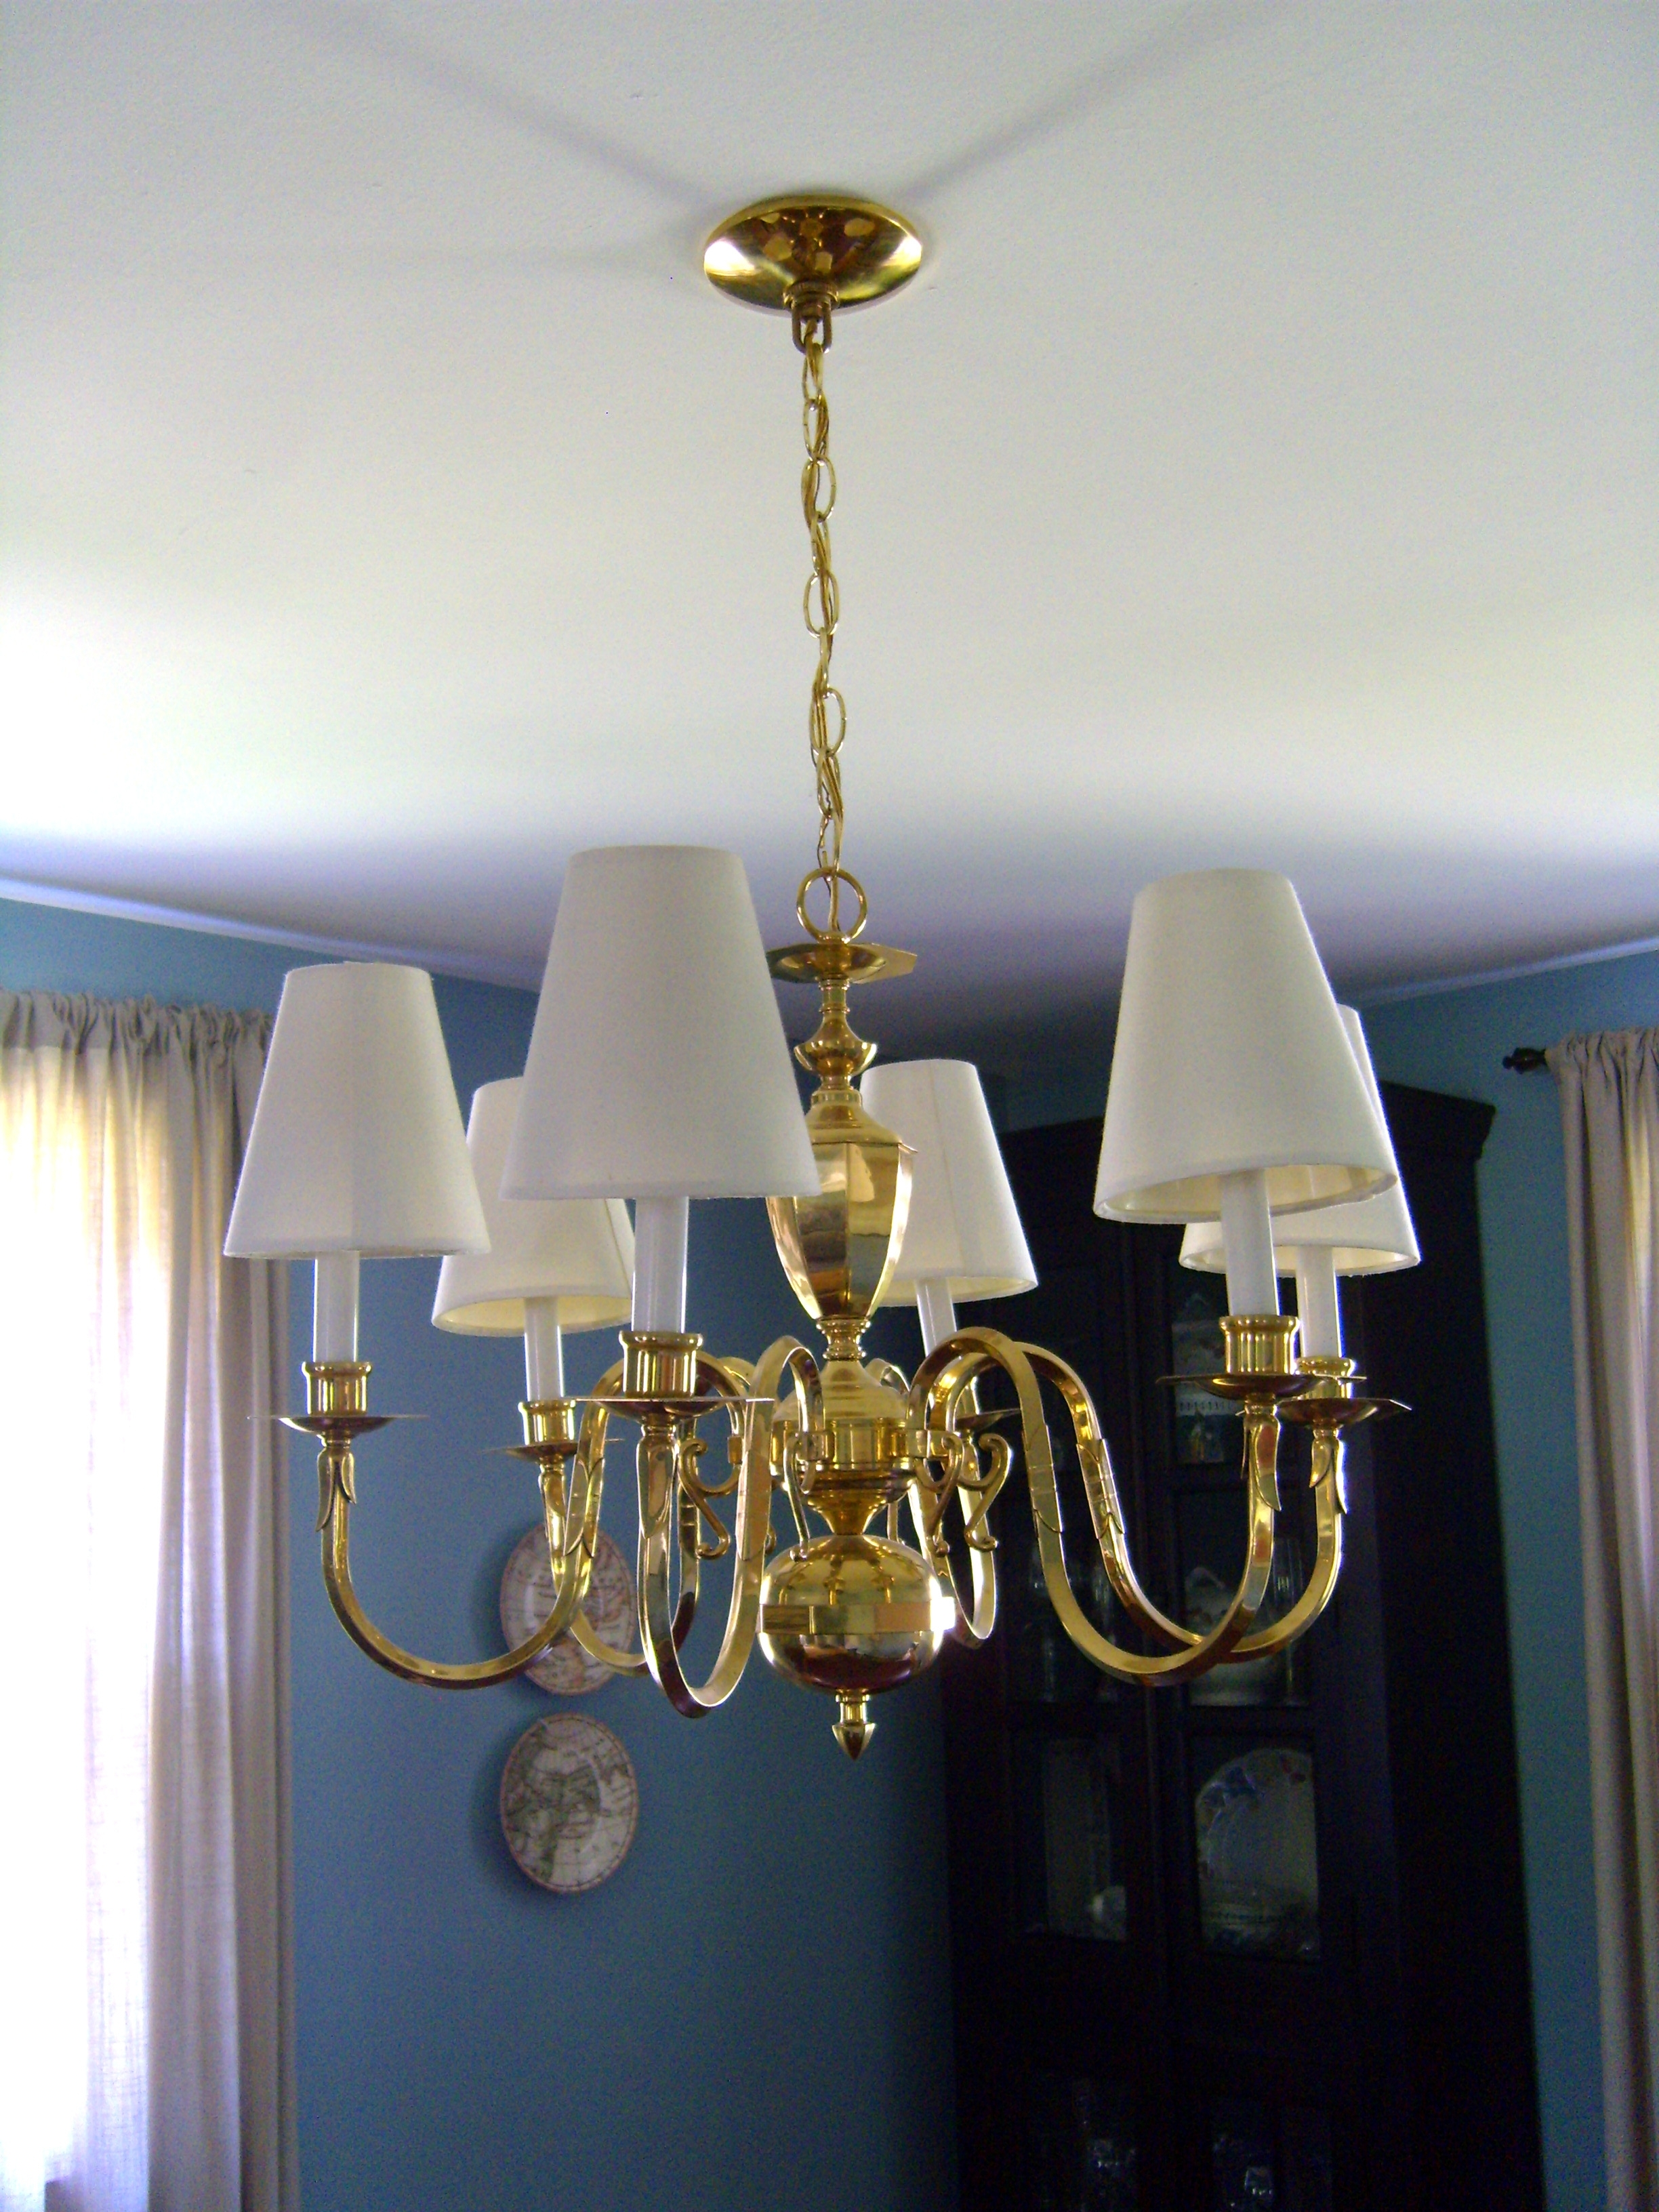 Popular Chandelier Light Shades In Furniture : Small Drum Lamp Shades Chandelier Saving Space Mini (View 10 of 15)